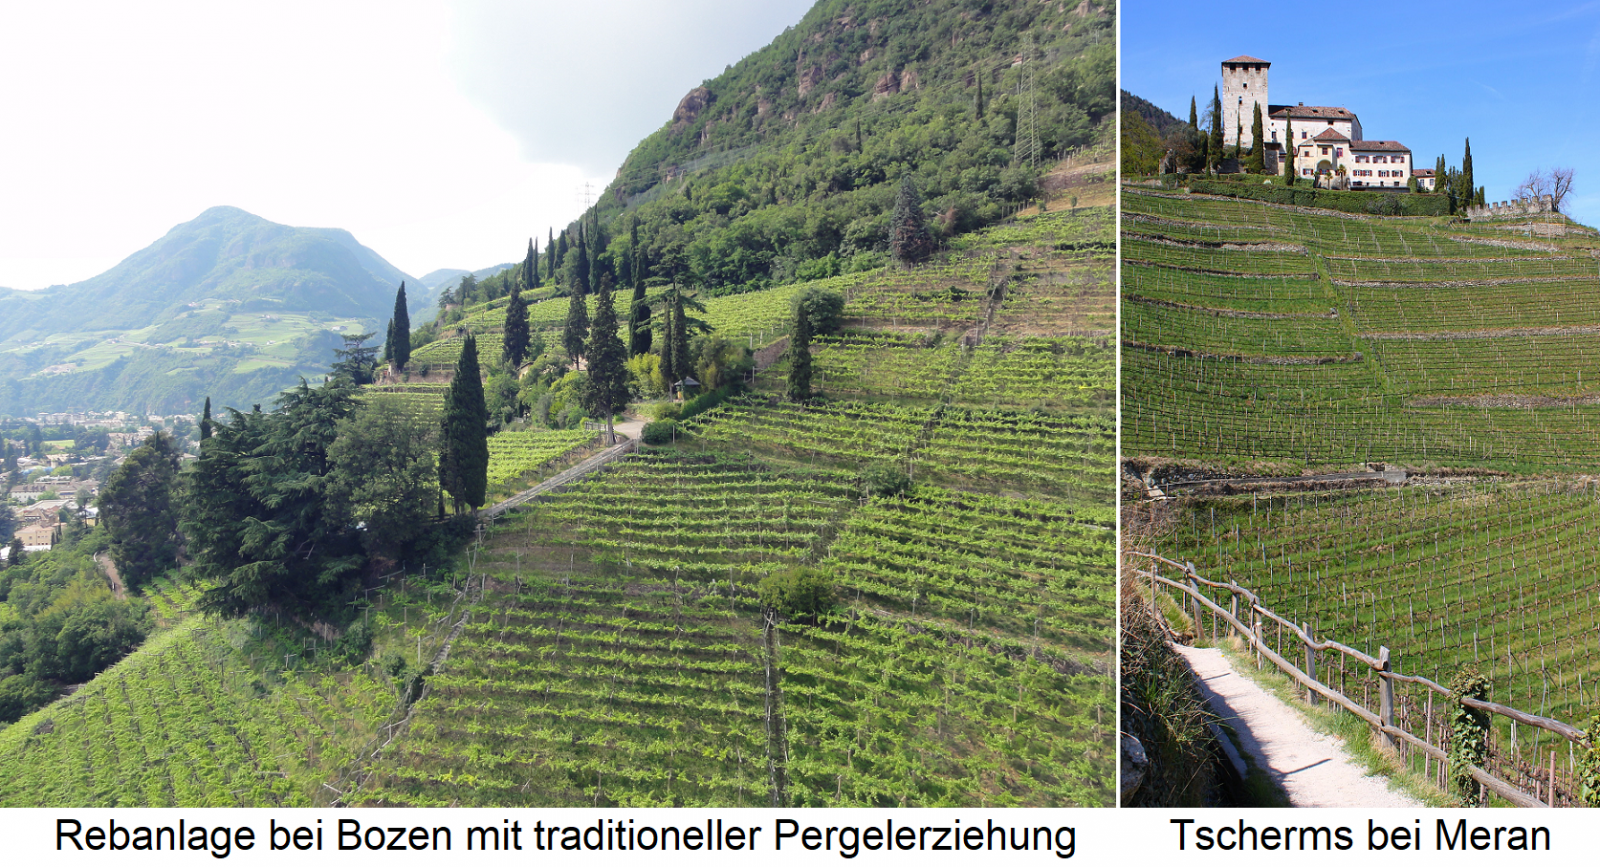 South Tyrol - vineyards near Bolzano in more traditional pergola education and Tscherms near Merano